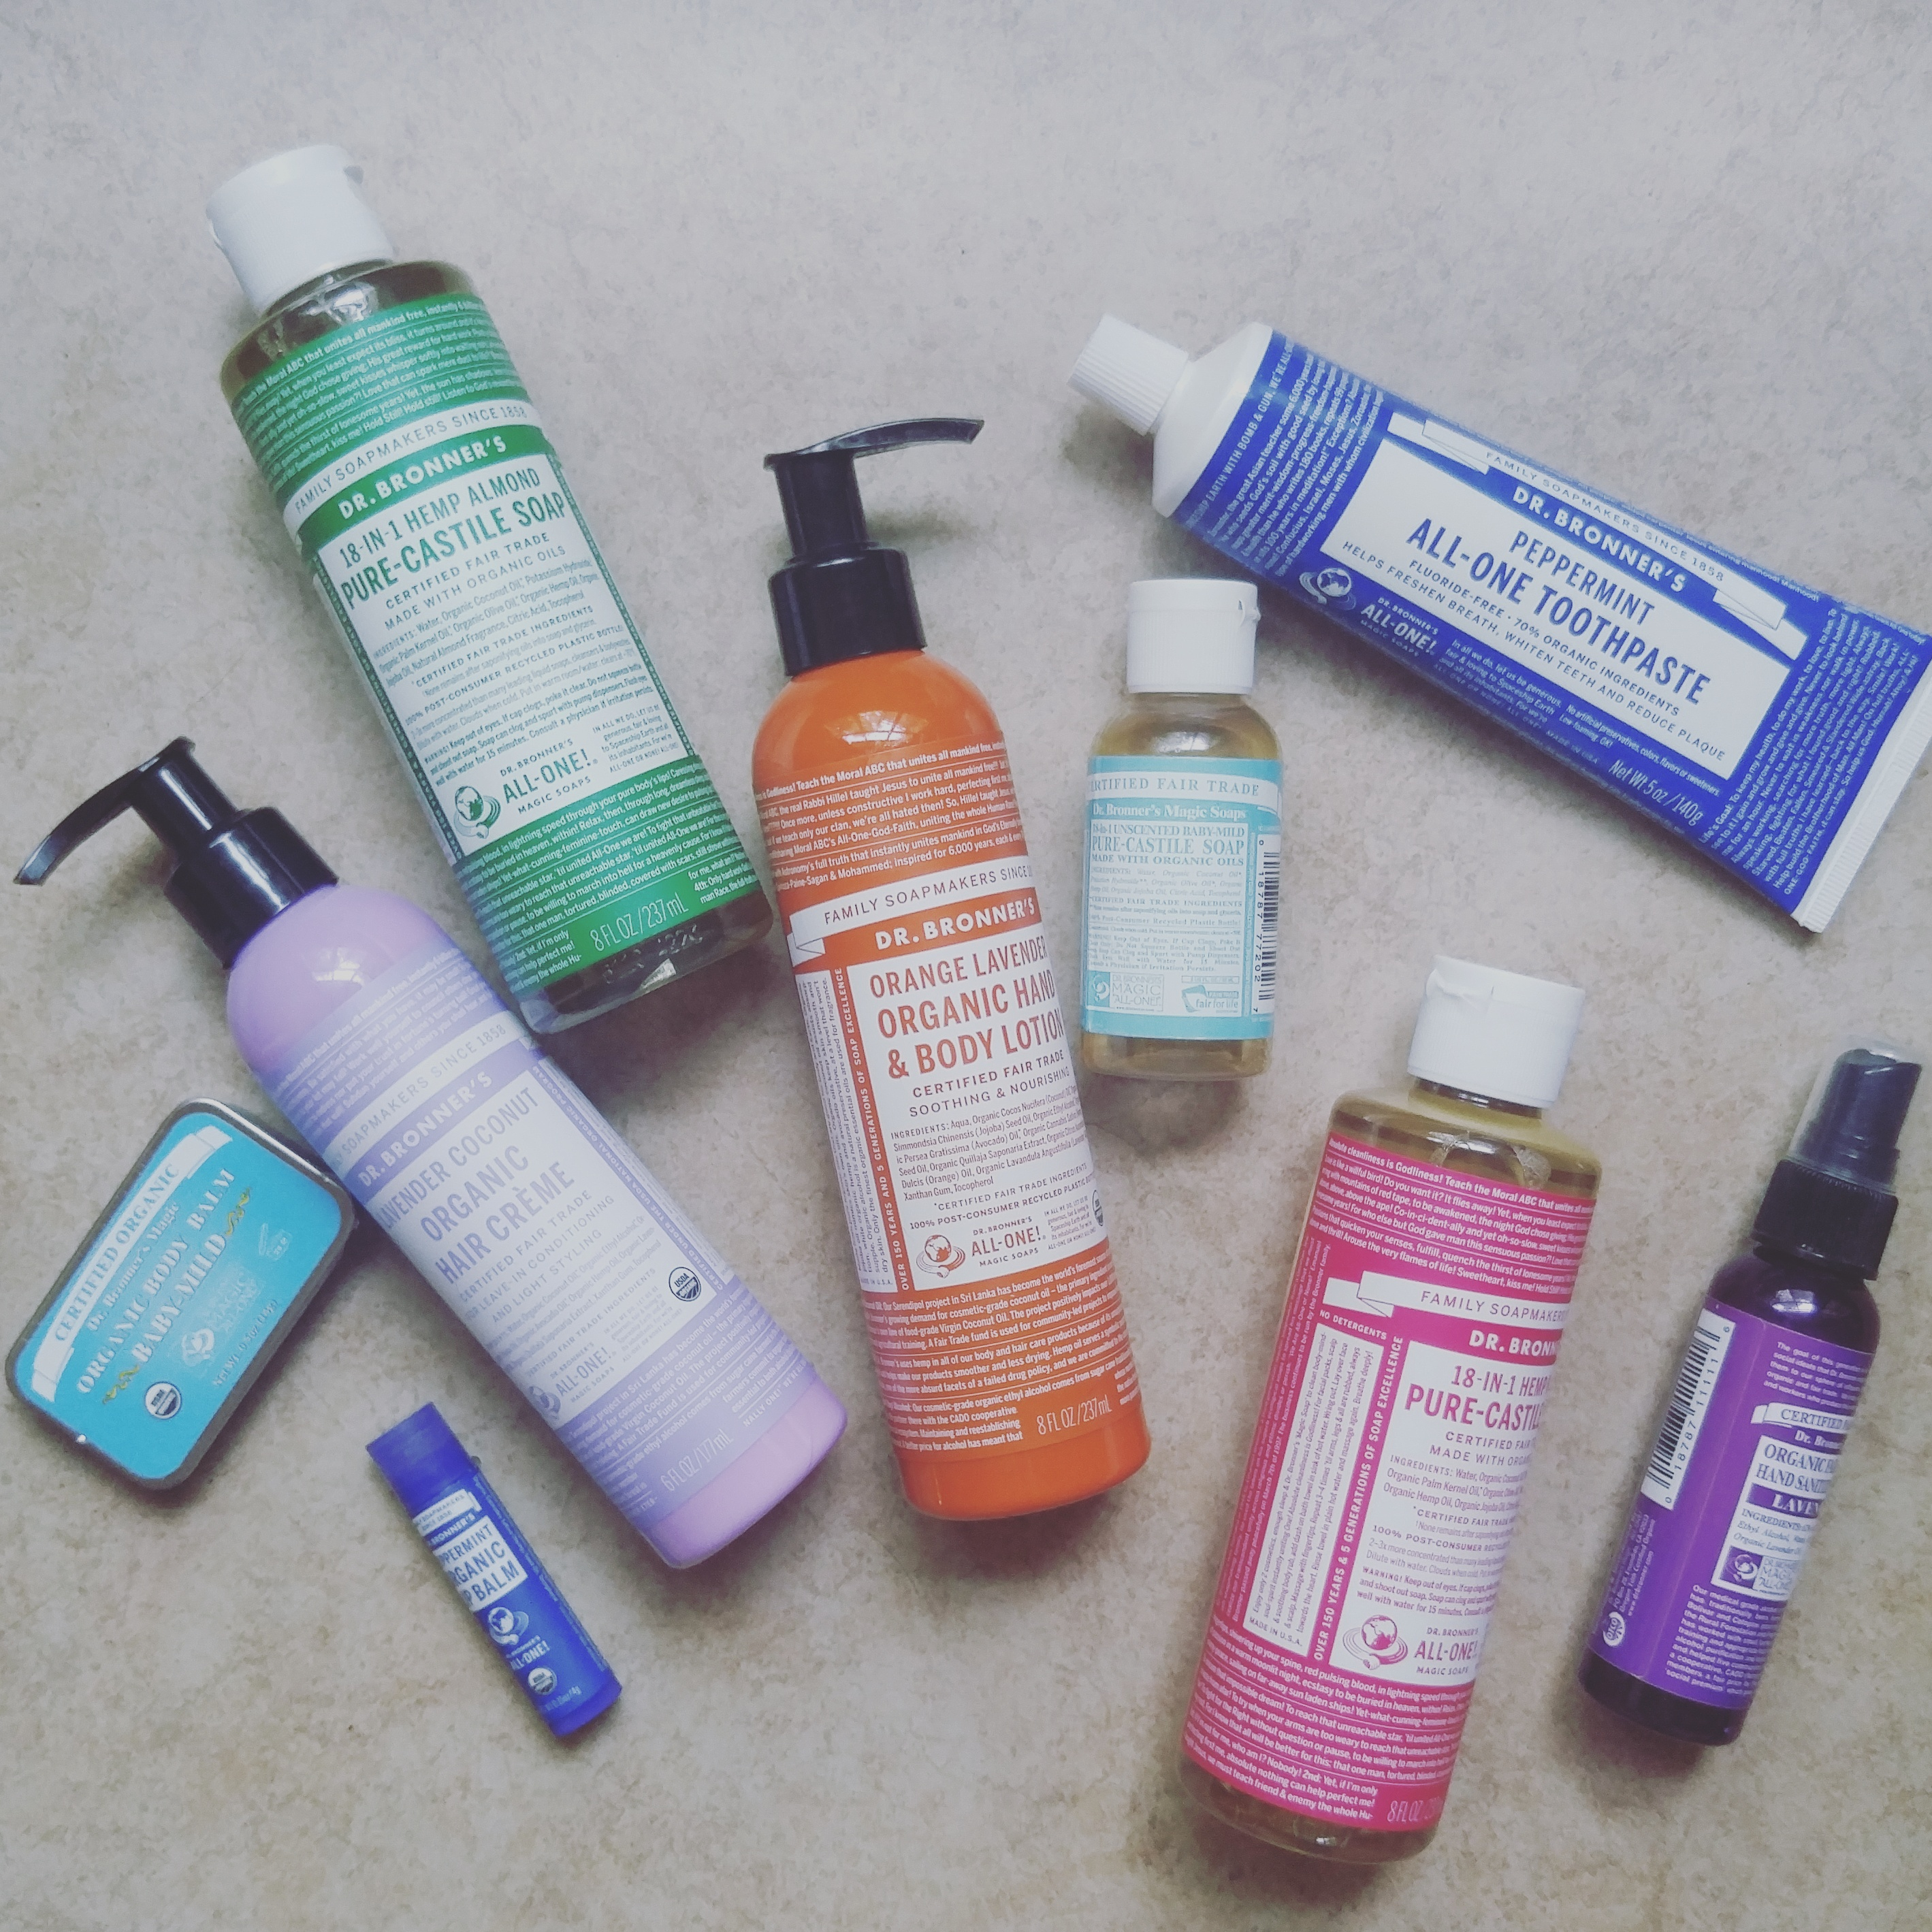 Brand Spotlight: Dr. Bronner's Magic Soaps